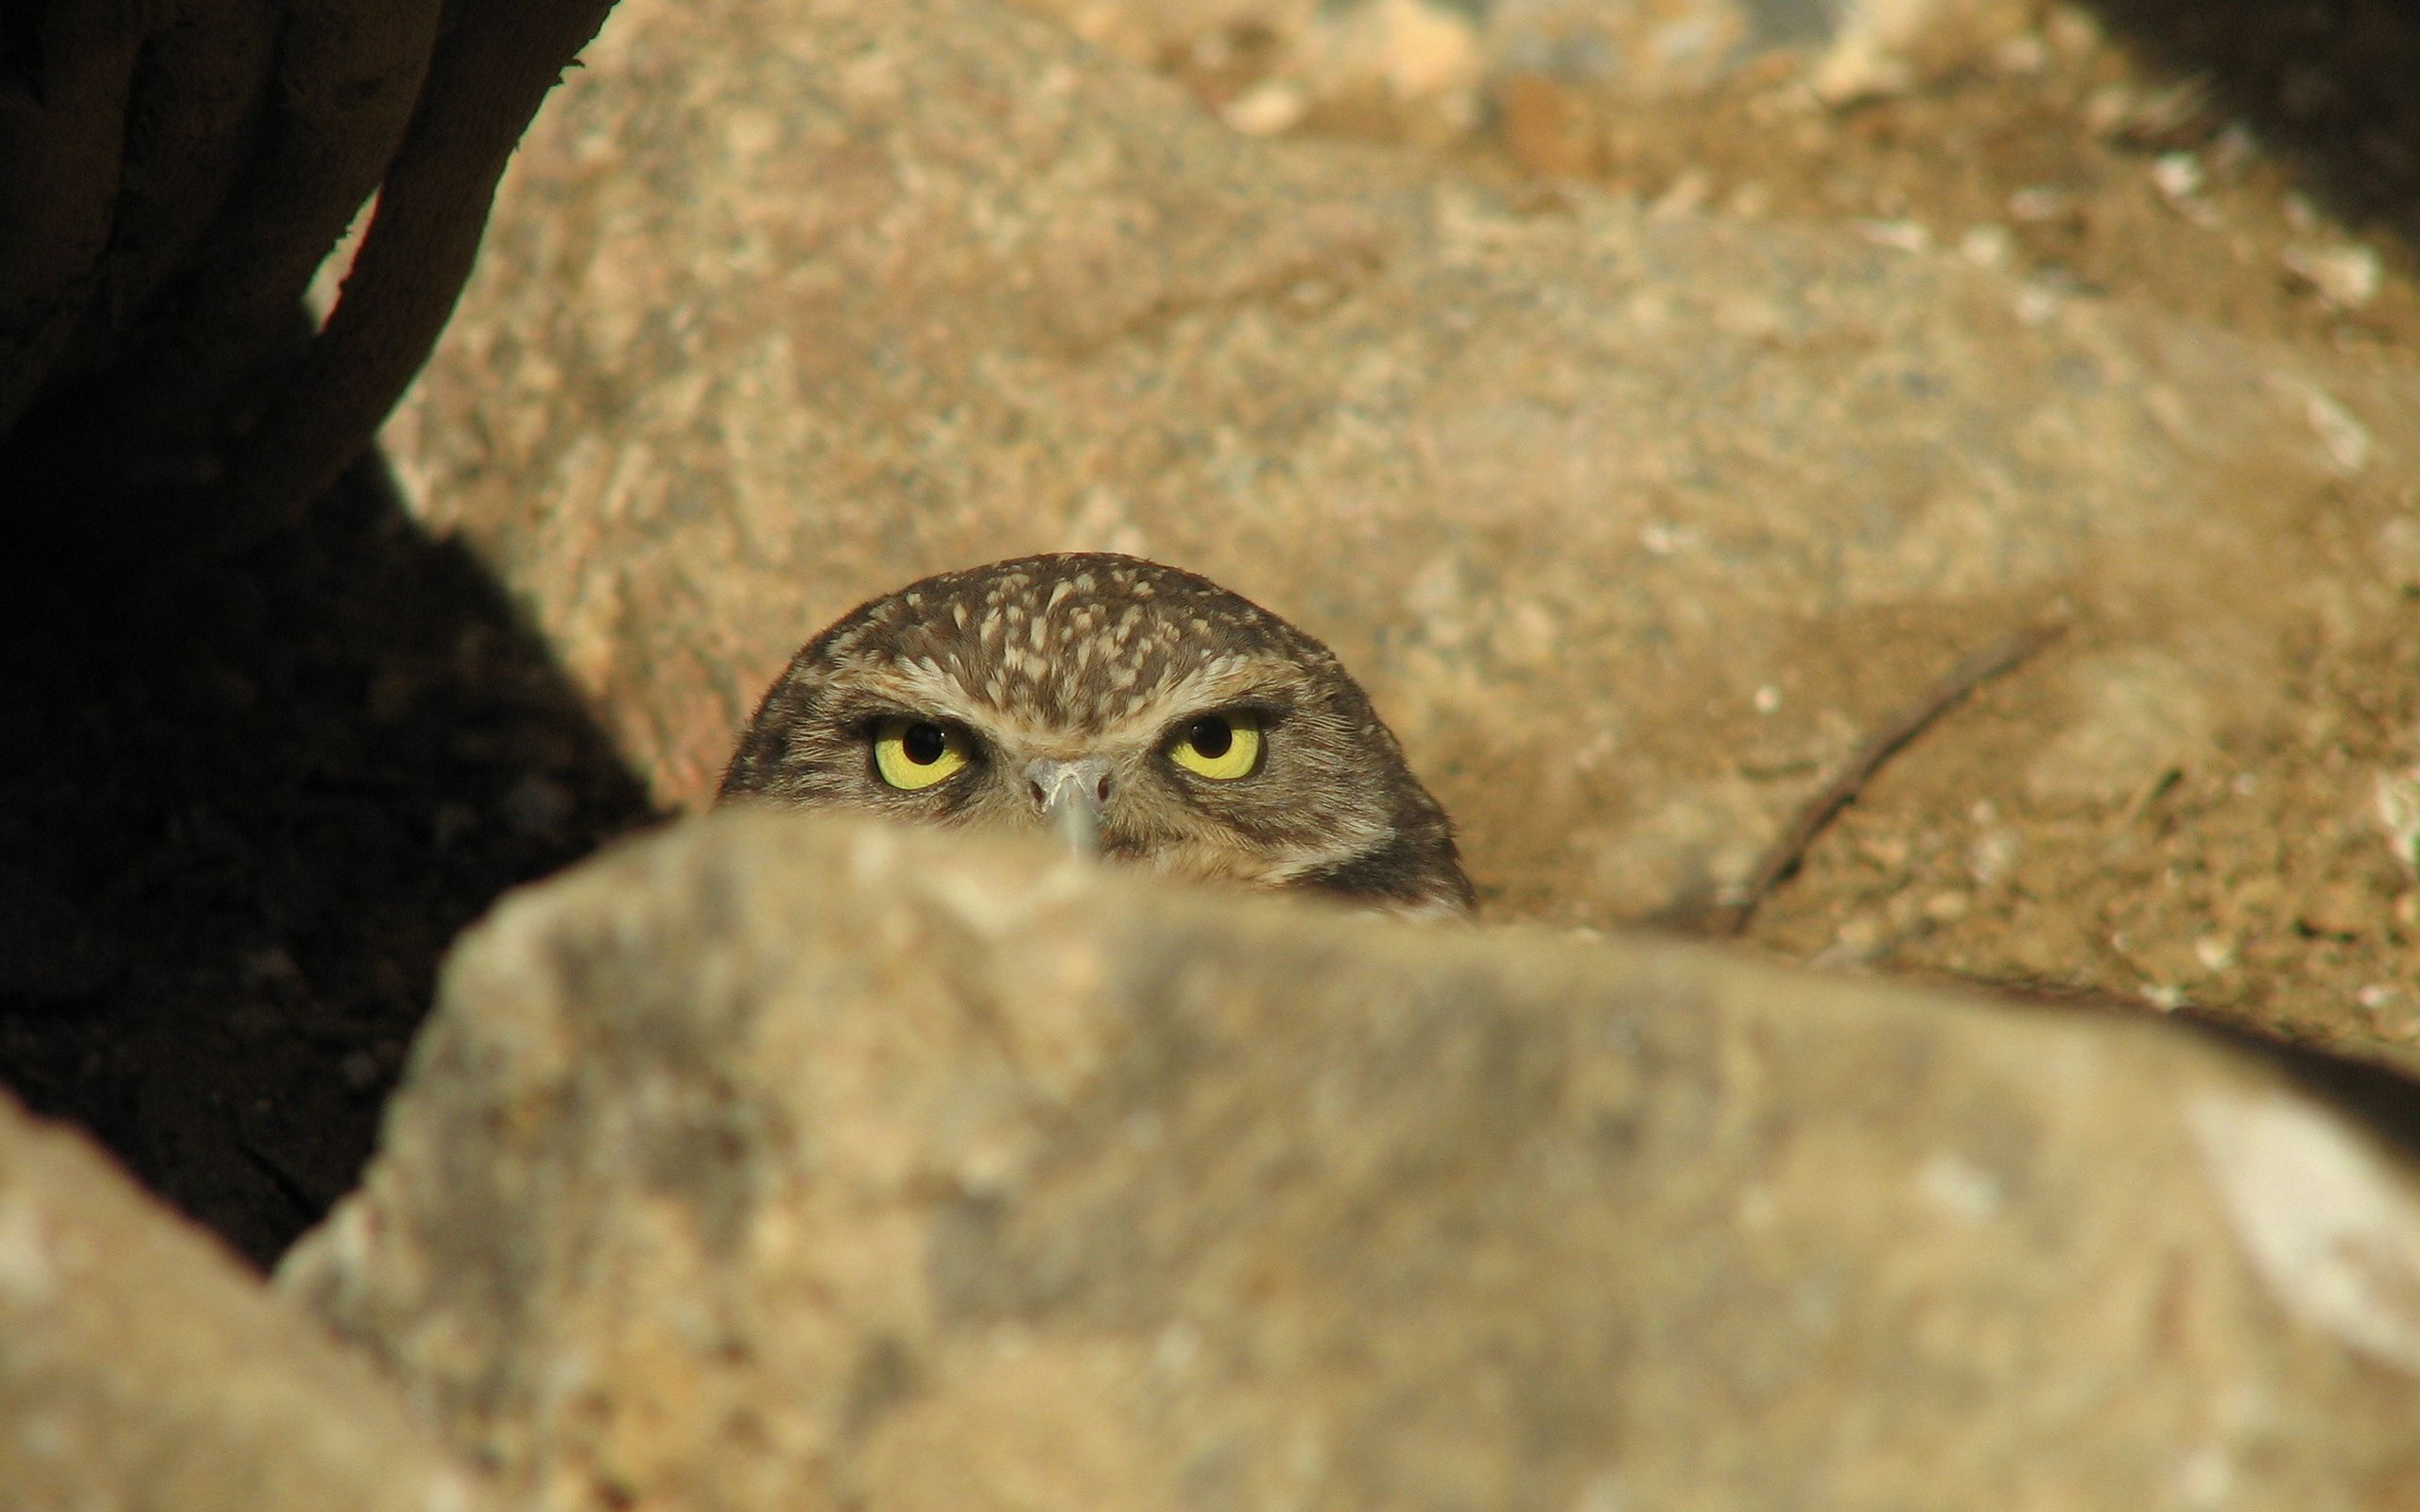 136299 download wallpaper Animals, Owl, Rock, Stone, Ambush screensavers and pictures for free